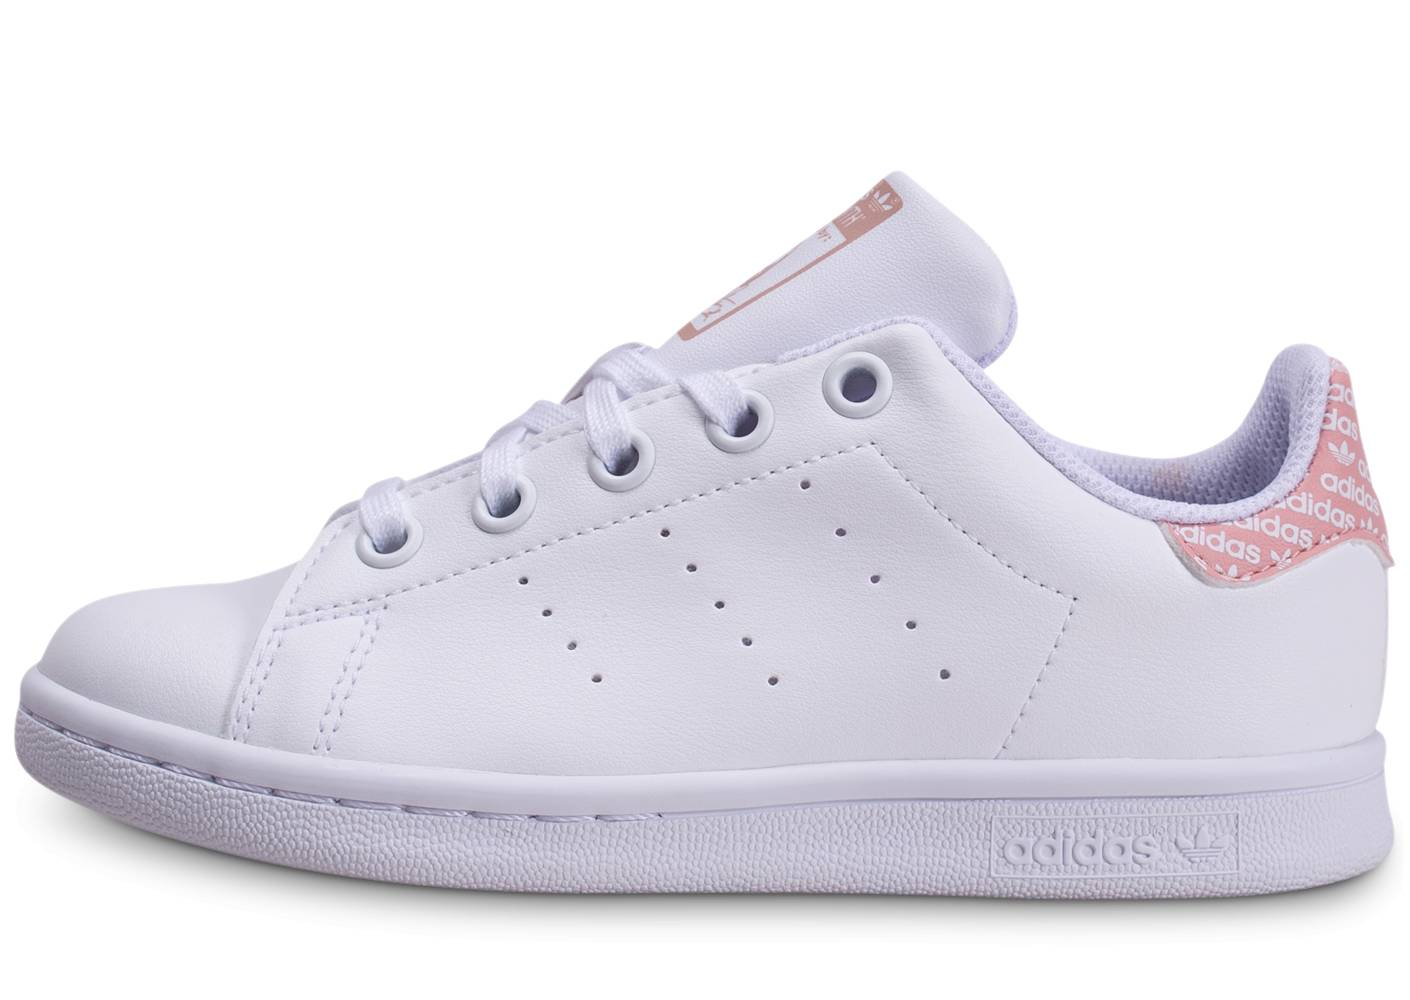 adidas Tennis adidas Stan Smith Mono Blanche Et Rose Enfant 35